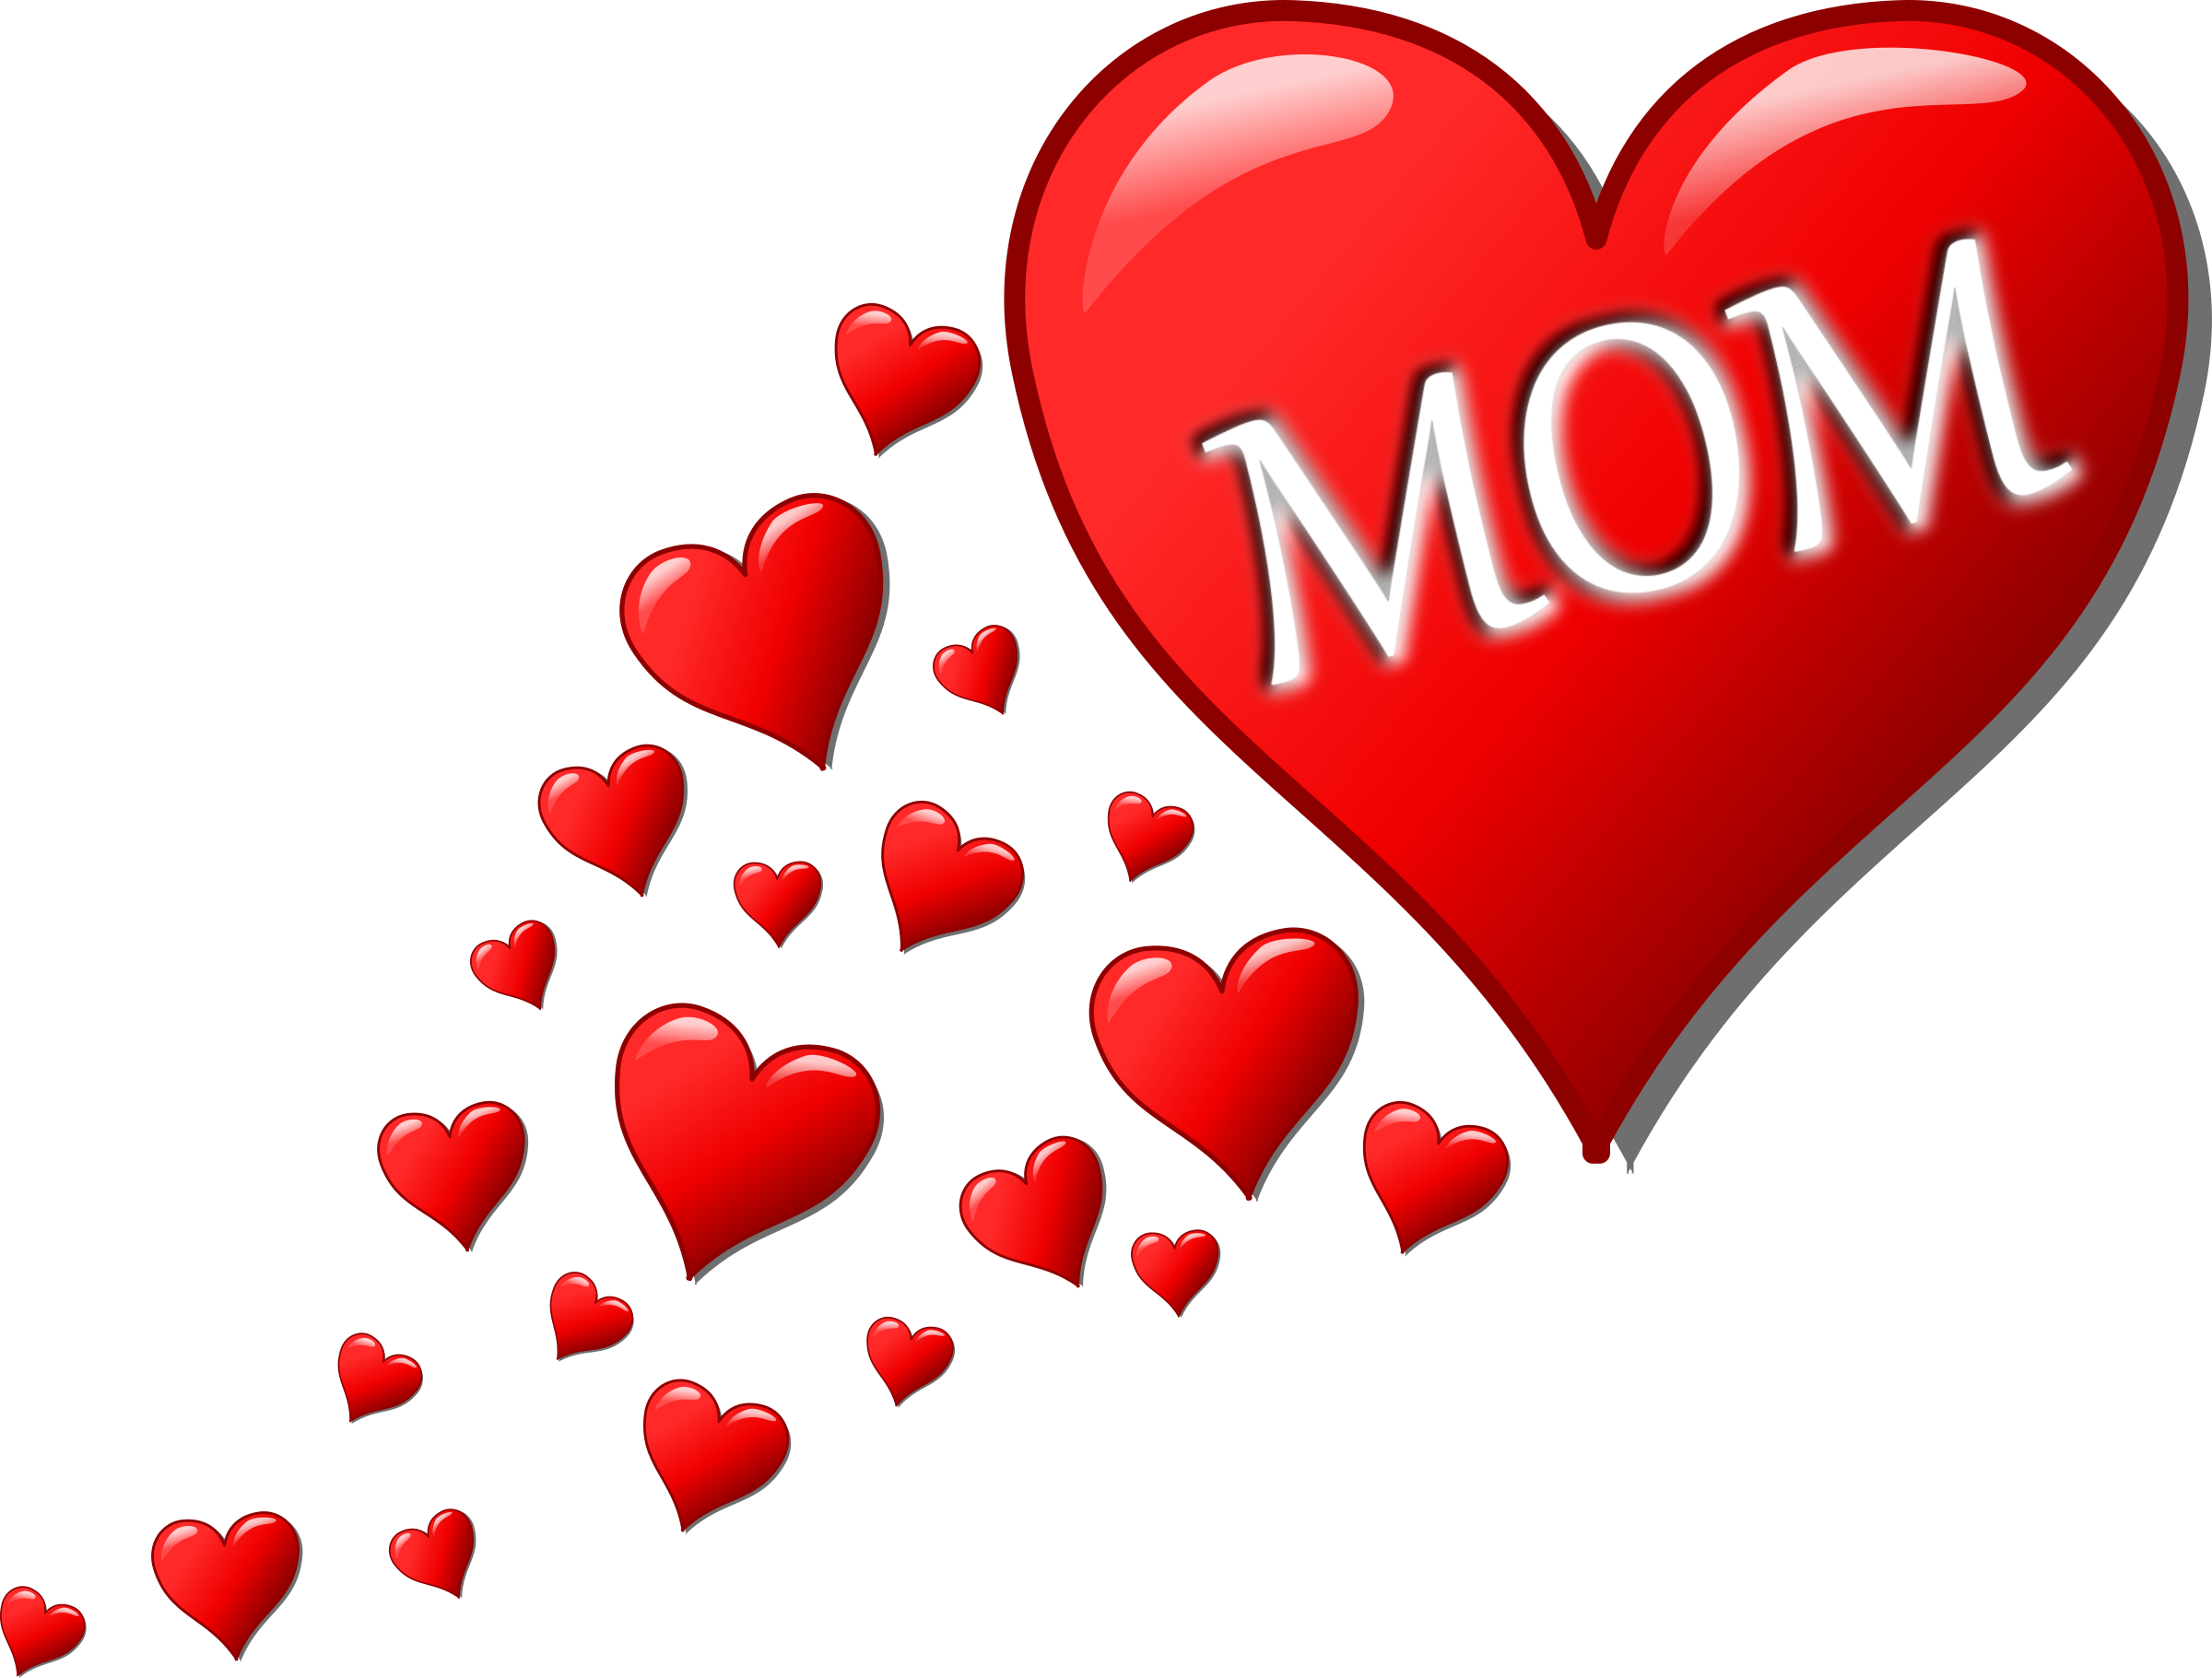 Small hearts clip art png library library Clipart - Mother's day heart with small hearts track png library library